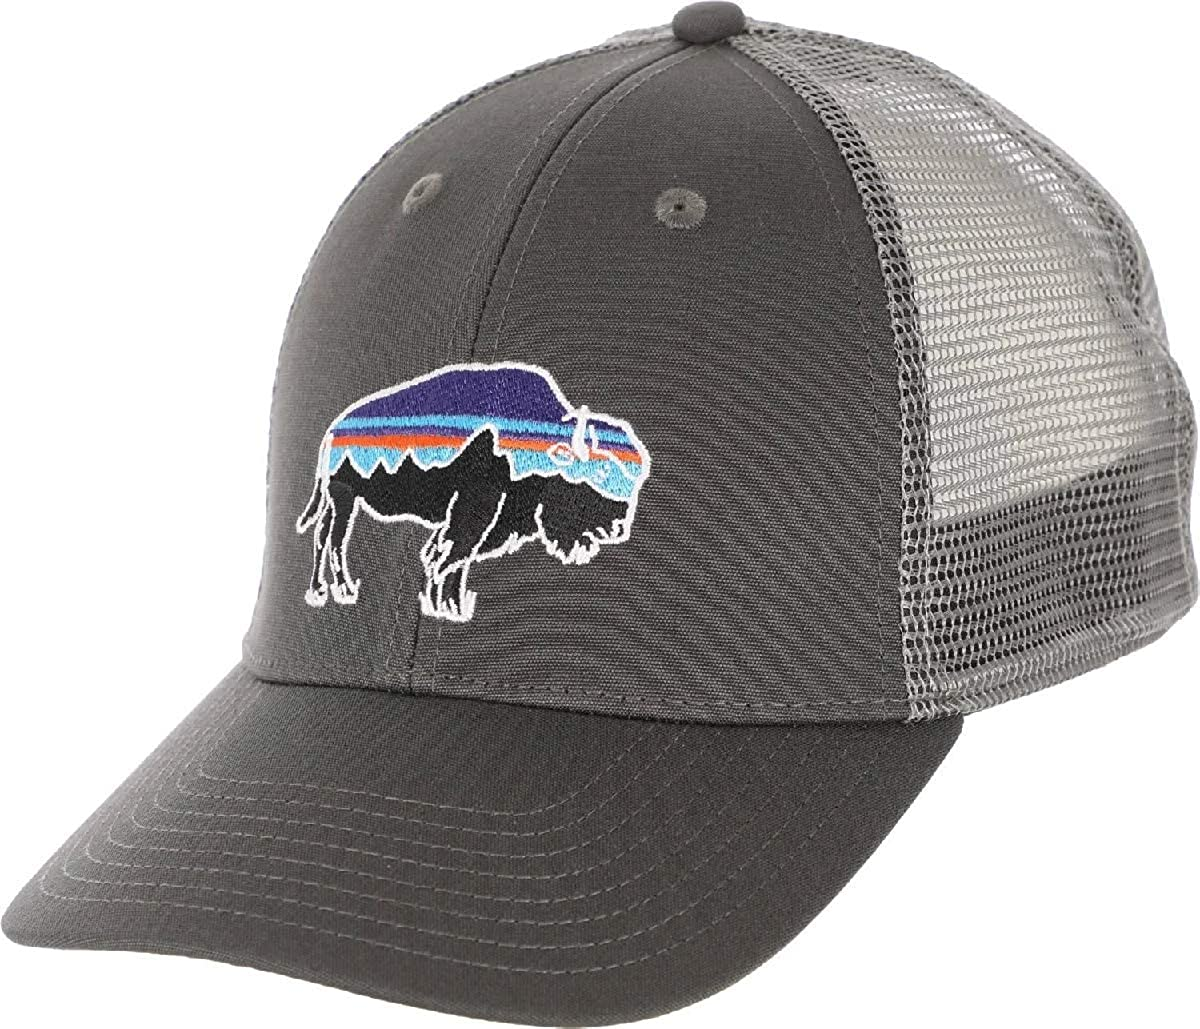 d9883f492 Patagonia Fitz Roy Bison LoPro Trucker Hat (Forge Grey w/Feather ...